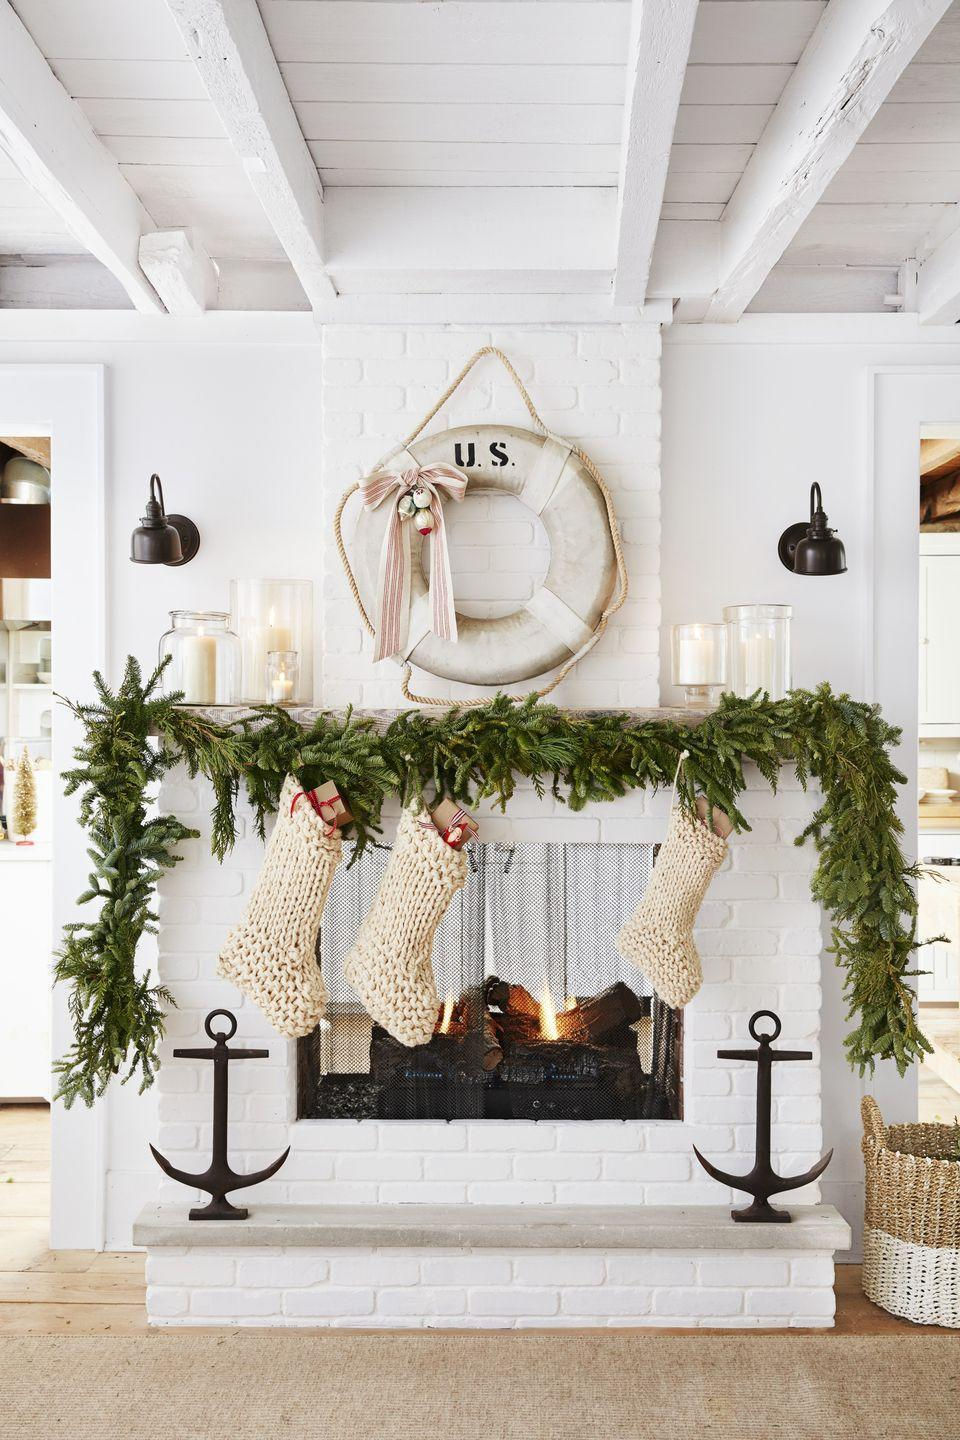 <p>A pair of sconces flanks this brick veneer fireplace to give it a warm holiday glow. The homeowner added a splash of nautical flair with an antique life preserver adorned with a festive bow. </p>